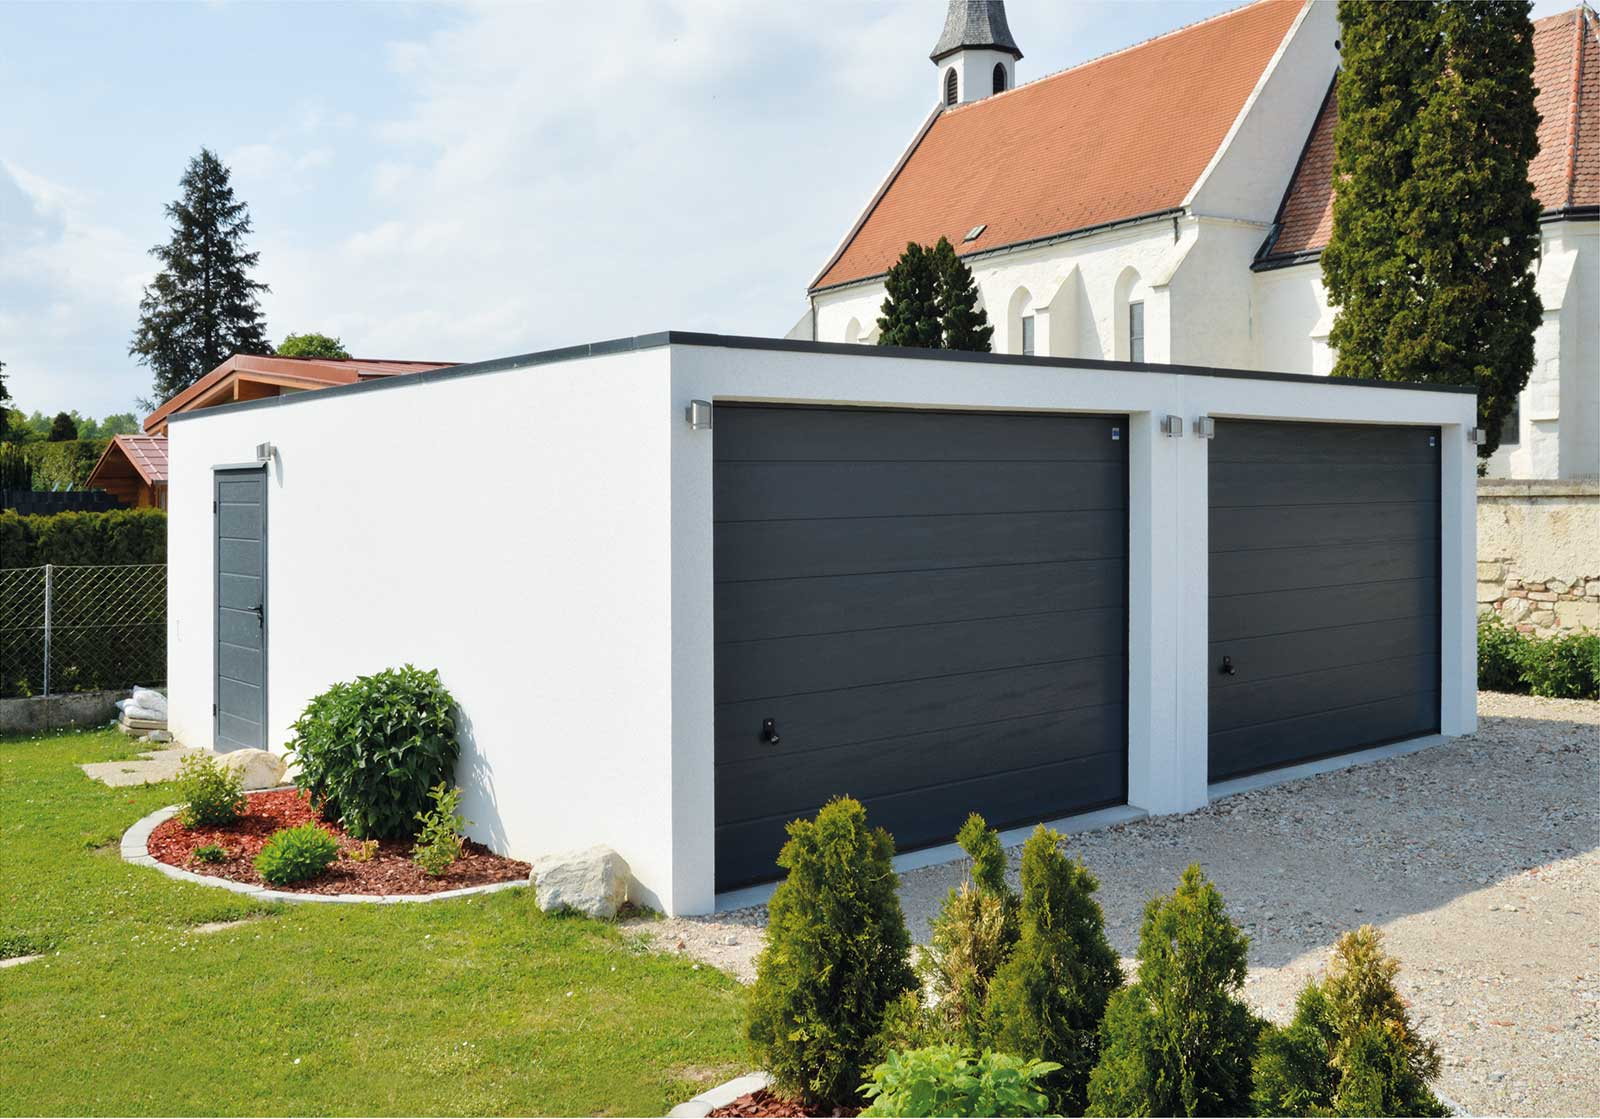 Double garage prefabricated from Bangerl